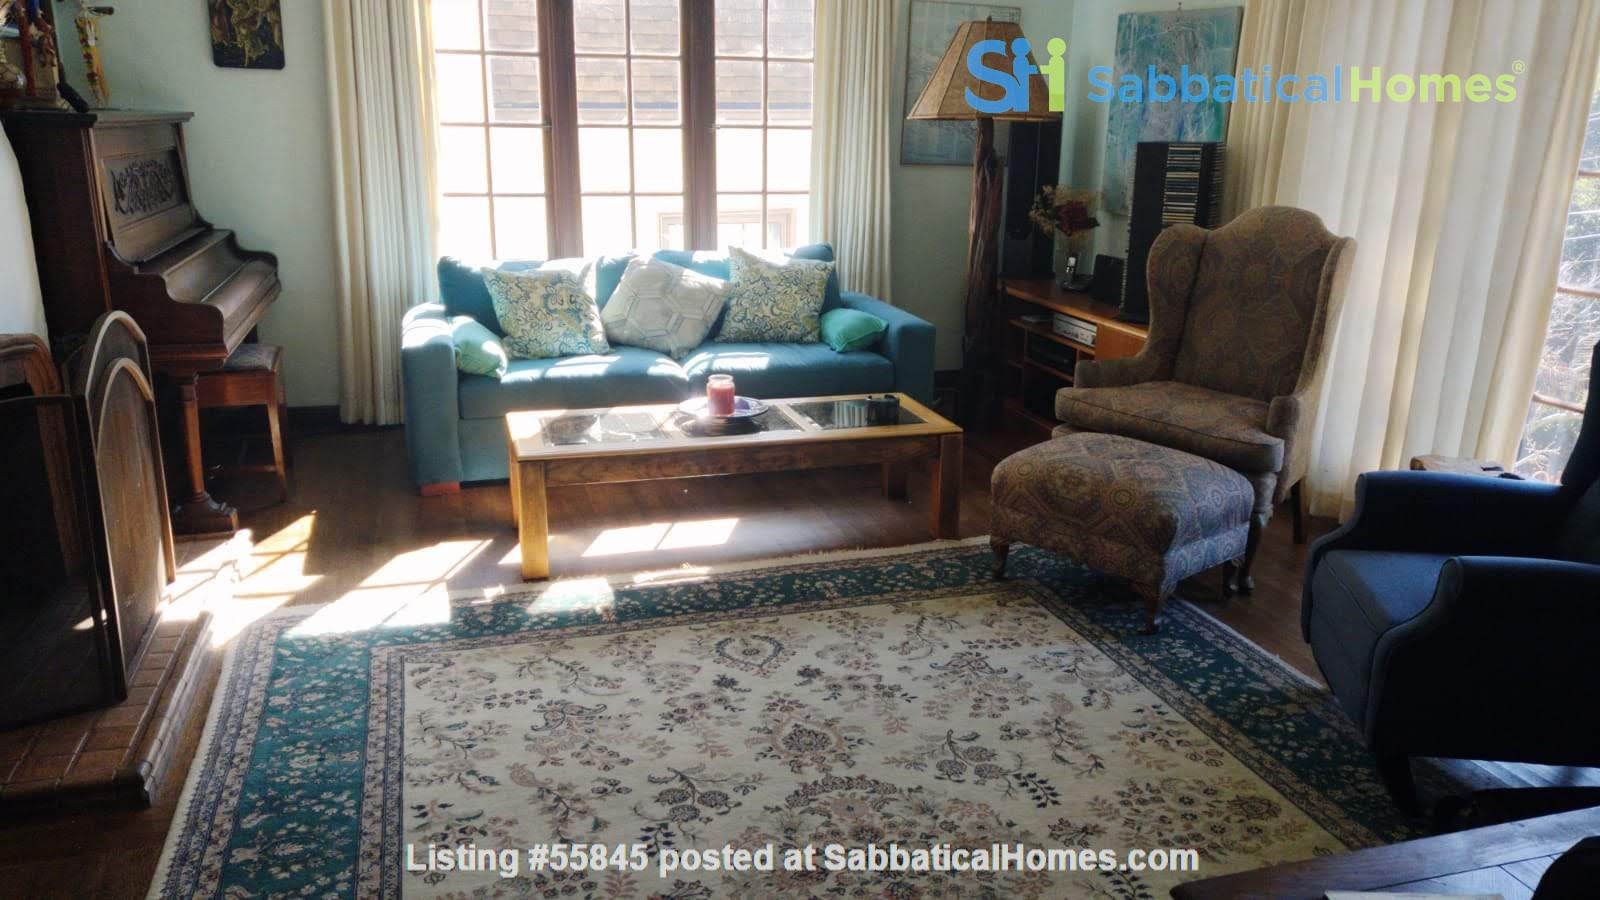 Well-located family home near parks, Gourmet Ghetto, UC Berkeley Home Rental in Berkeley, California, United States 3